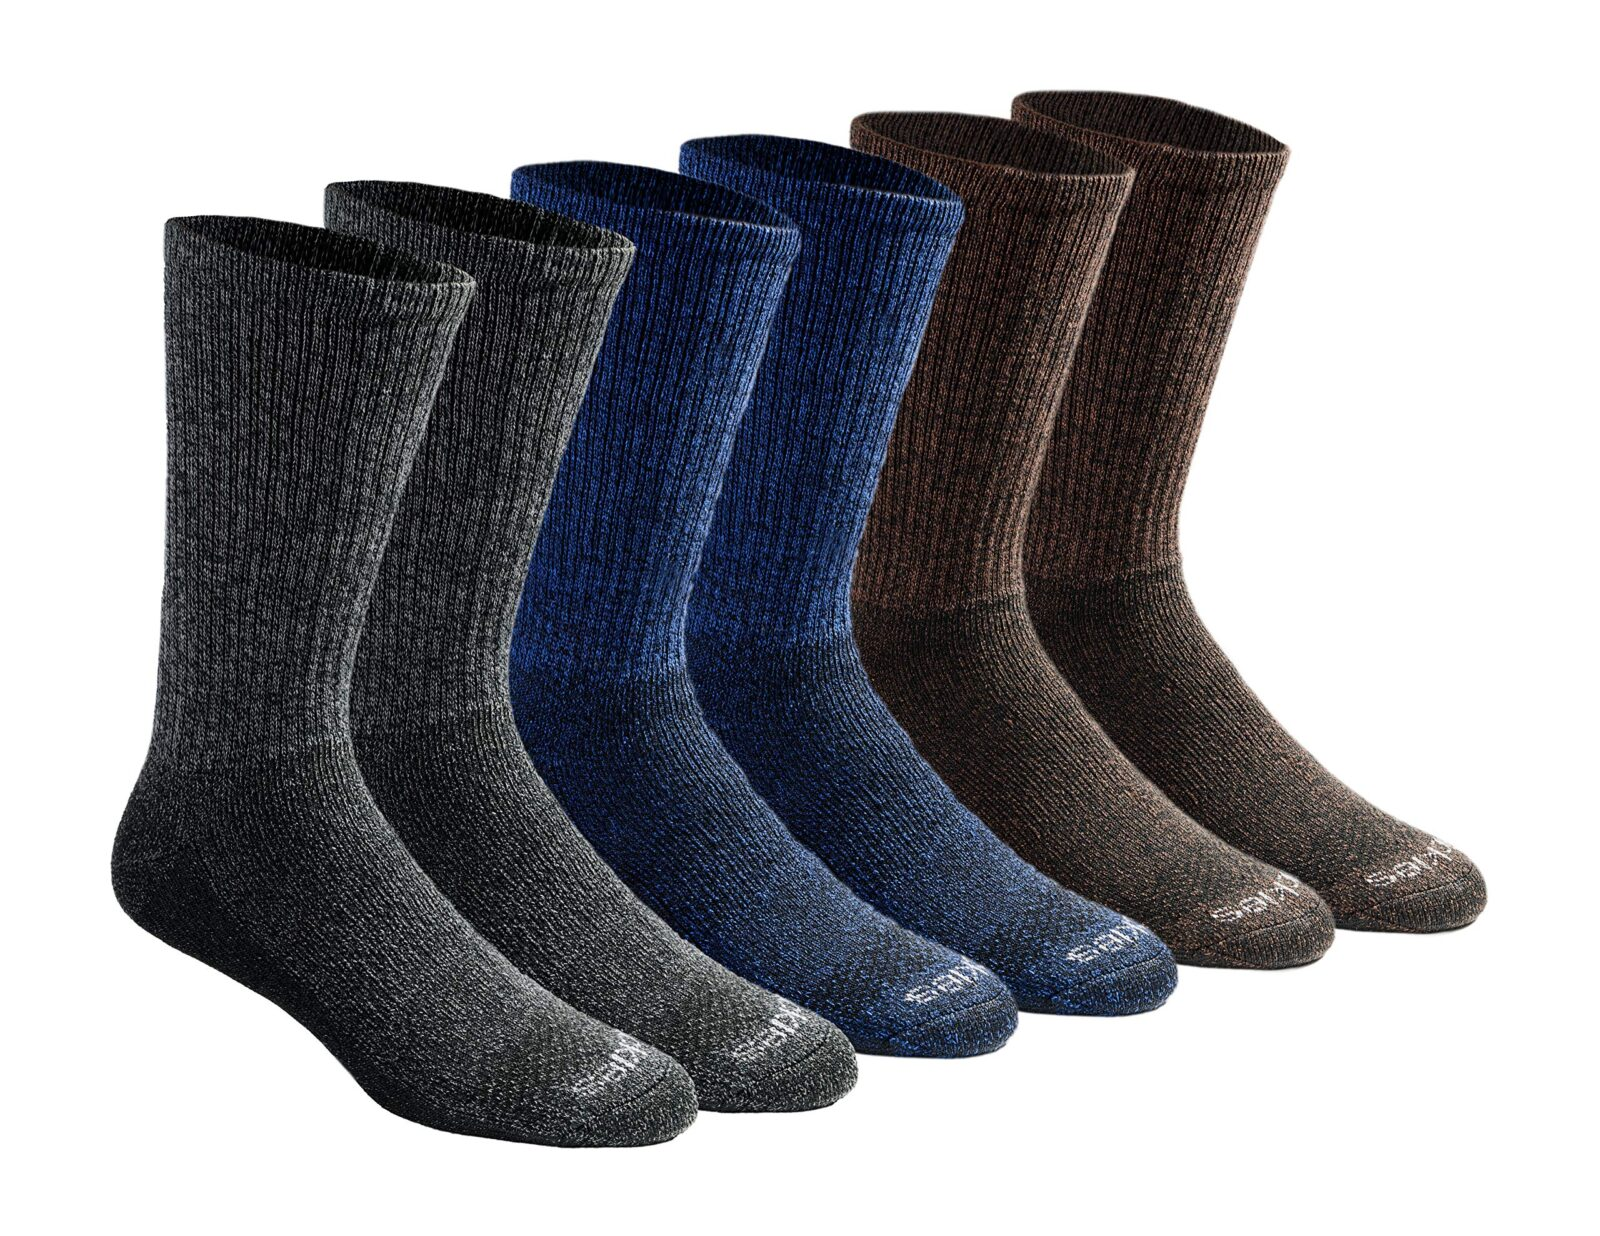 Top 6 The Best Thermal Socks for Winter [2020-2021] - Review